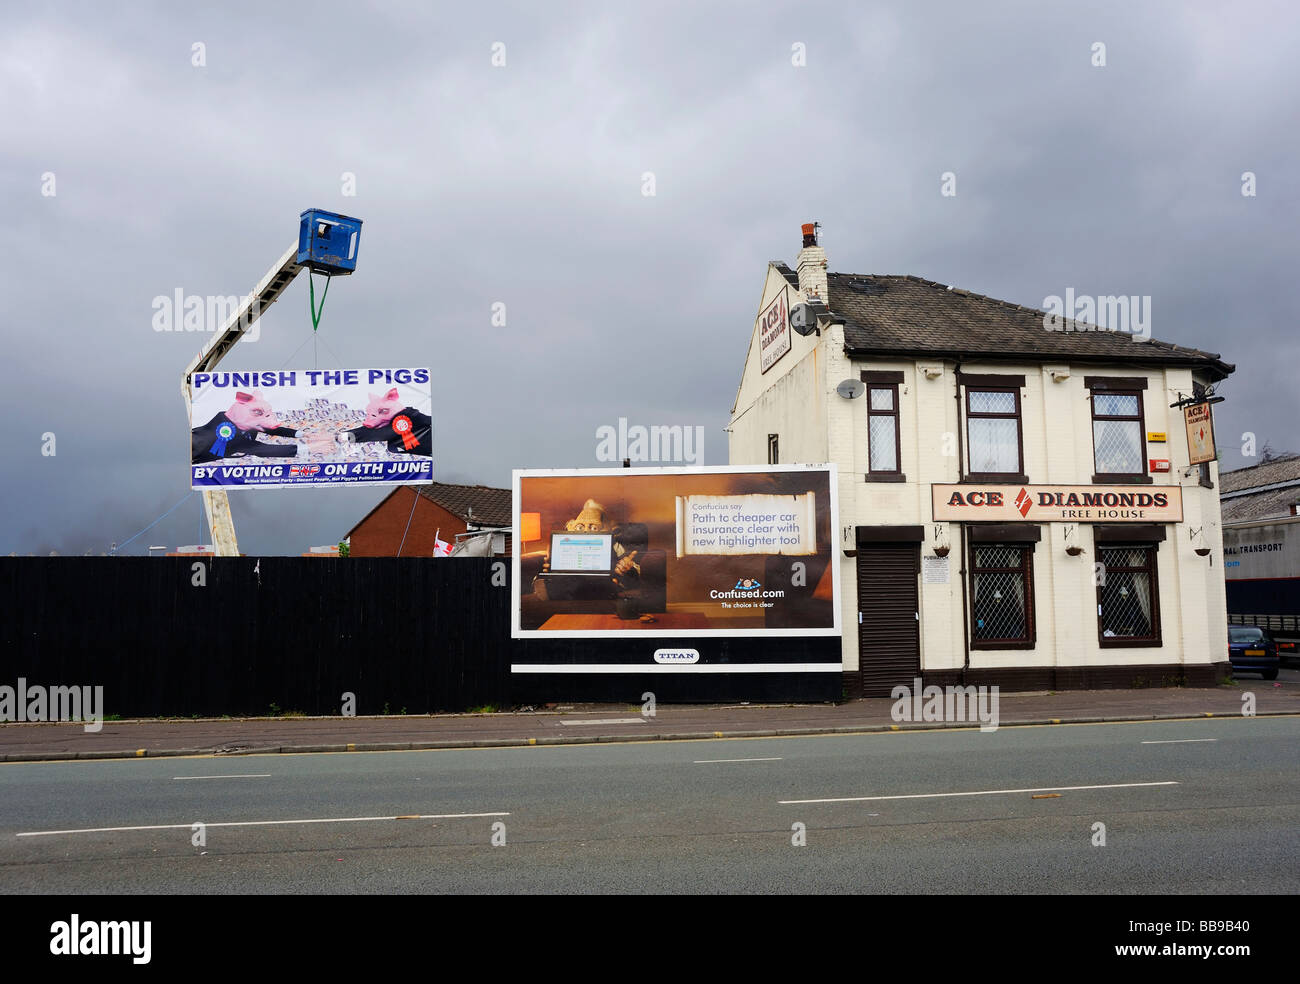 Ace of Diamonds on Oldham Road, Miles Platting, Manchester - Stock Image